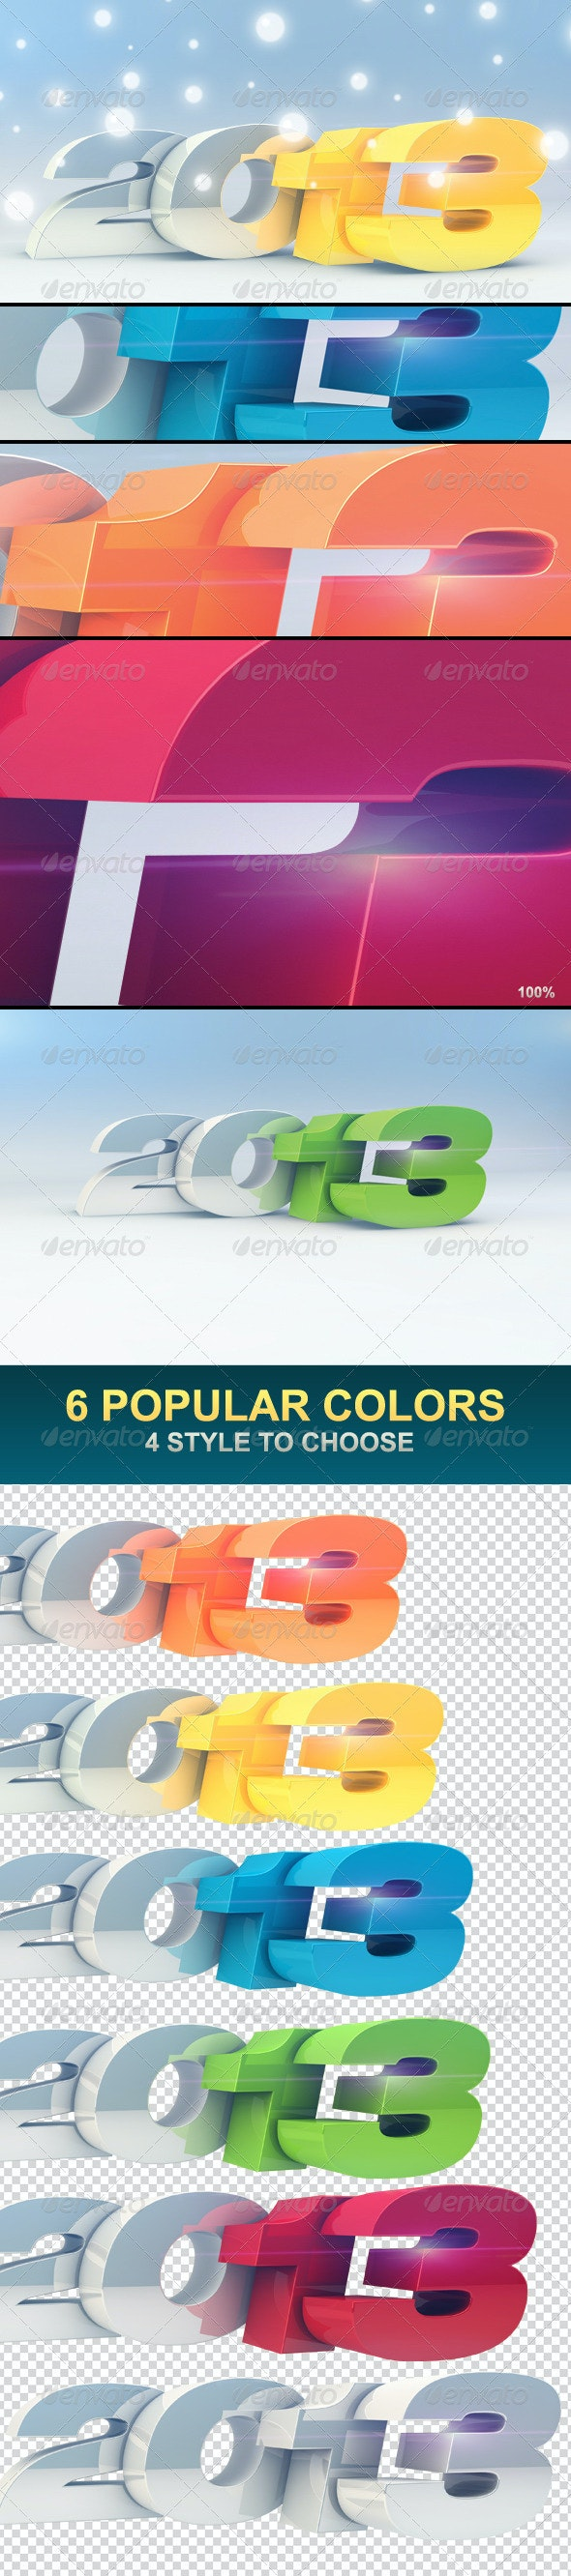 2013 Chrome Pack - Text 3D Renders